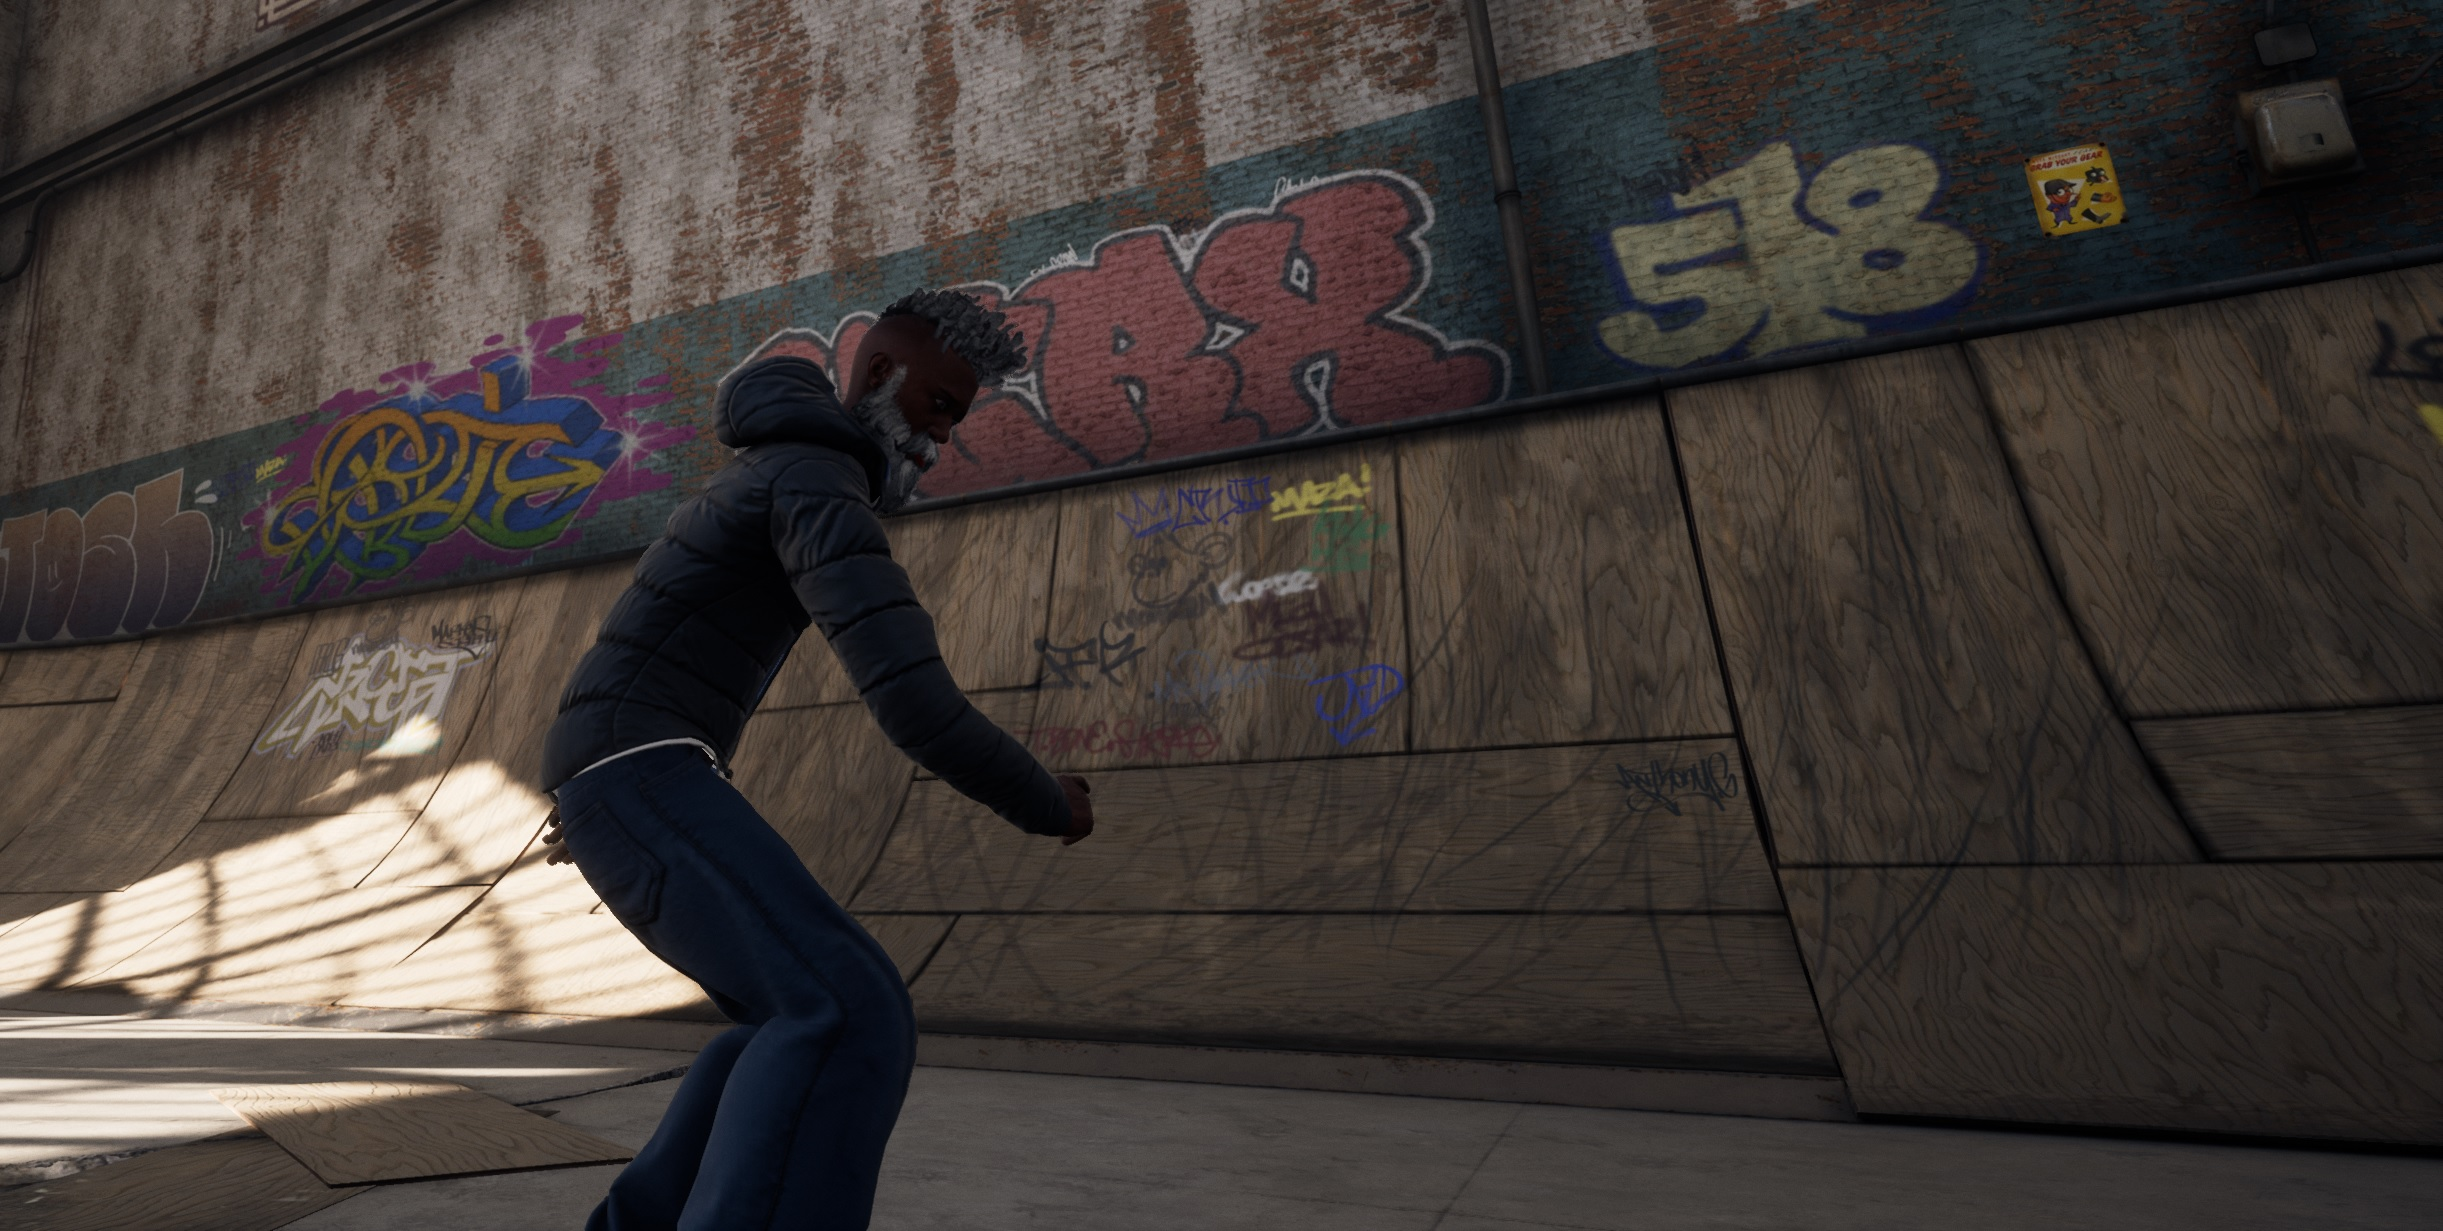 THPS 1+2's Create-a-Skater feature allows players to create a variety of playable characters, like my good buddy Earl Divx.